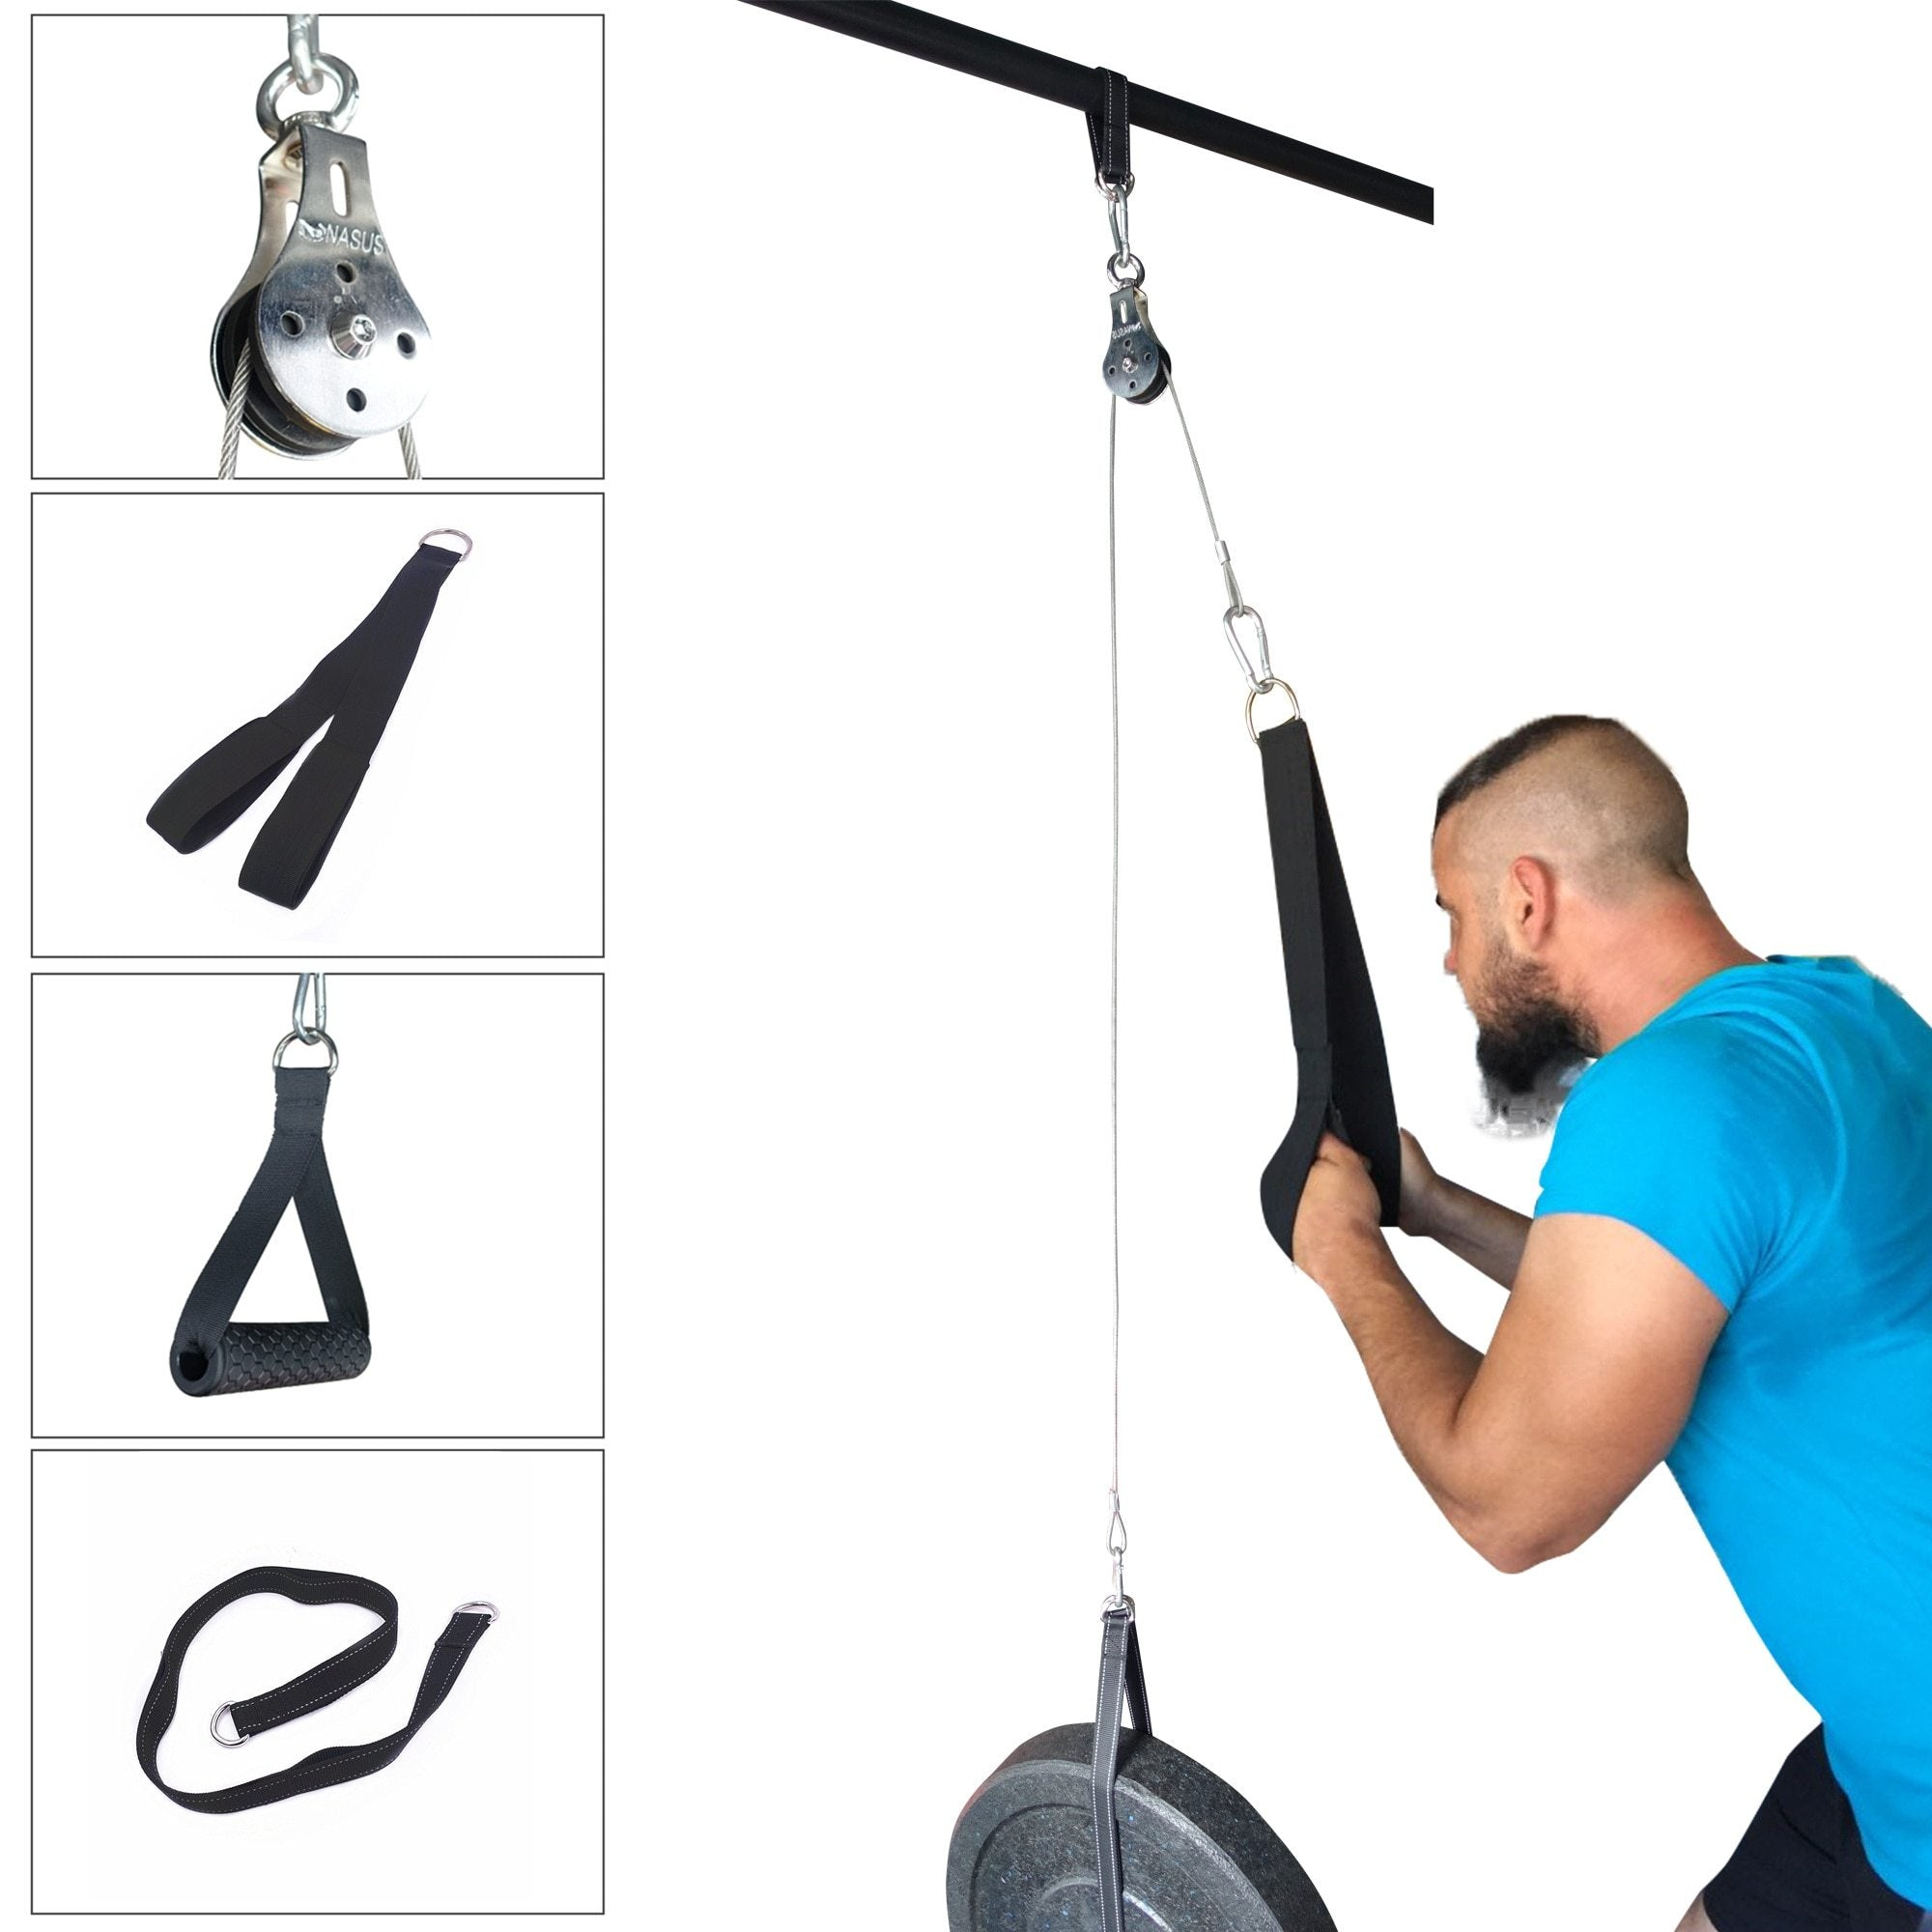 Fitness DIY Pulley Cable Machine Attachment System Arm Biceps Triceps Blaster Hand Strength Trainning Home Gym Workout Equipment - outoff